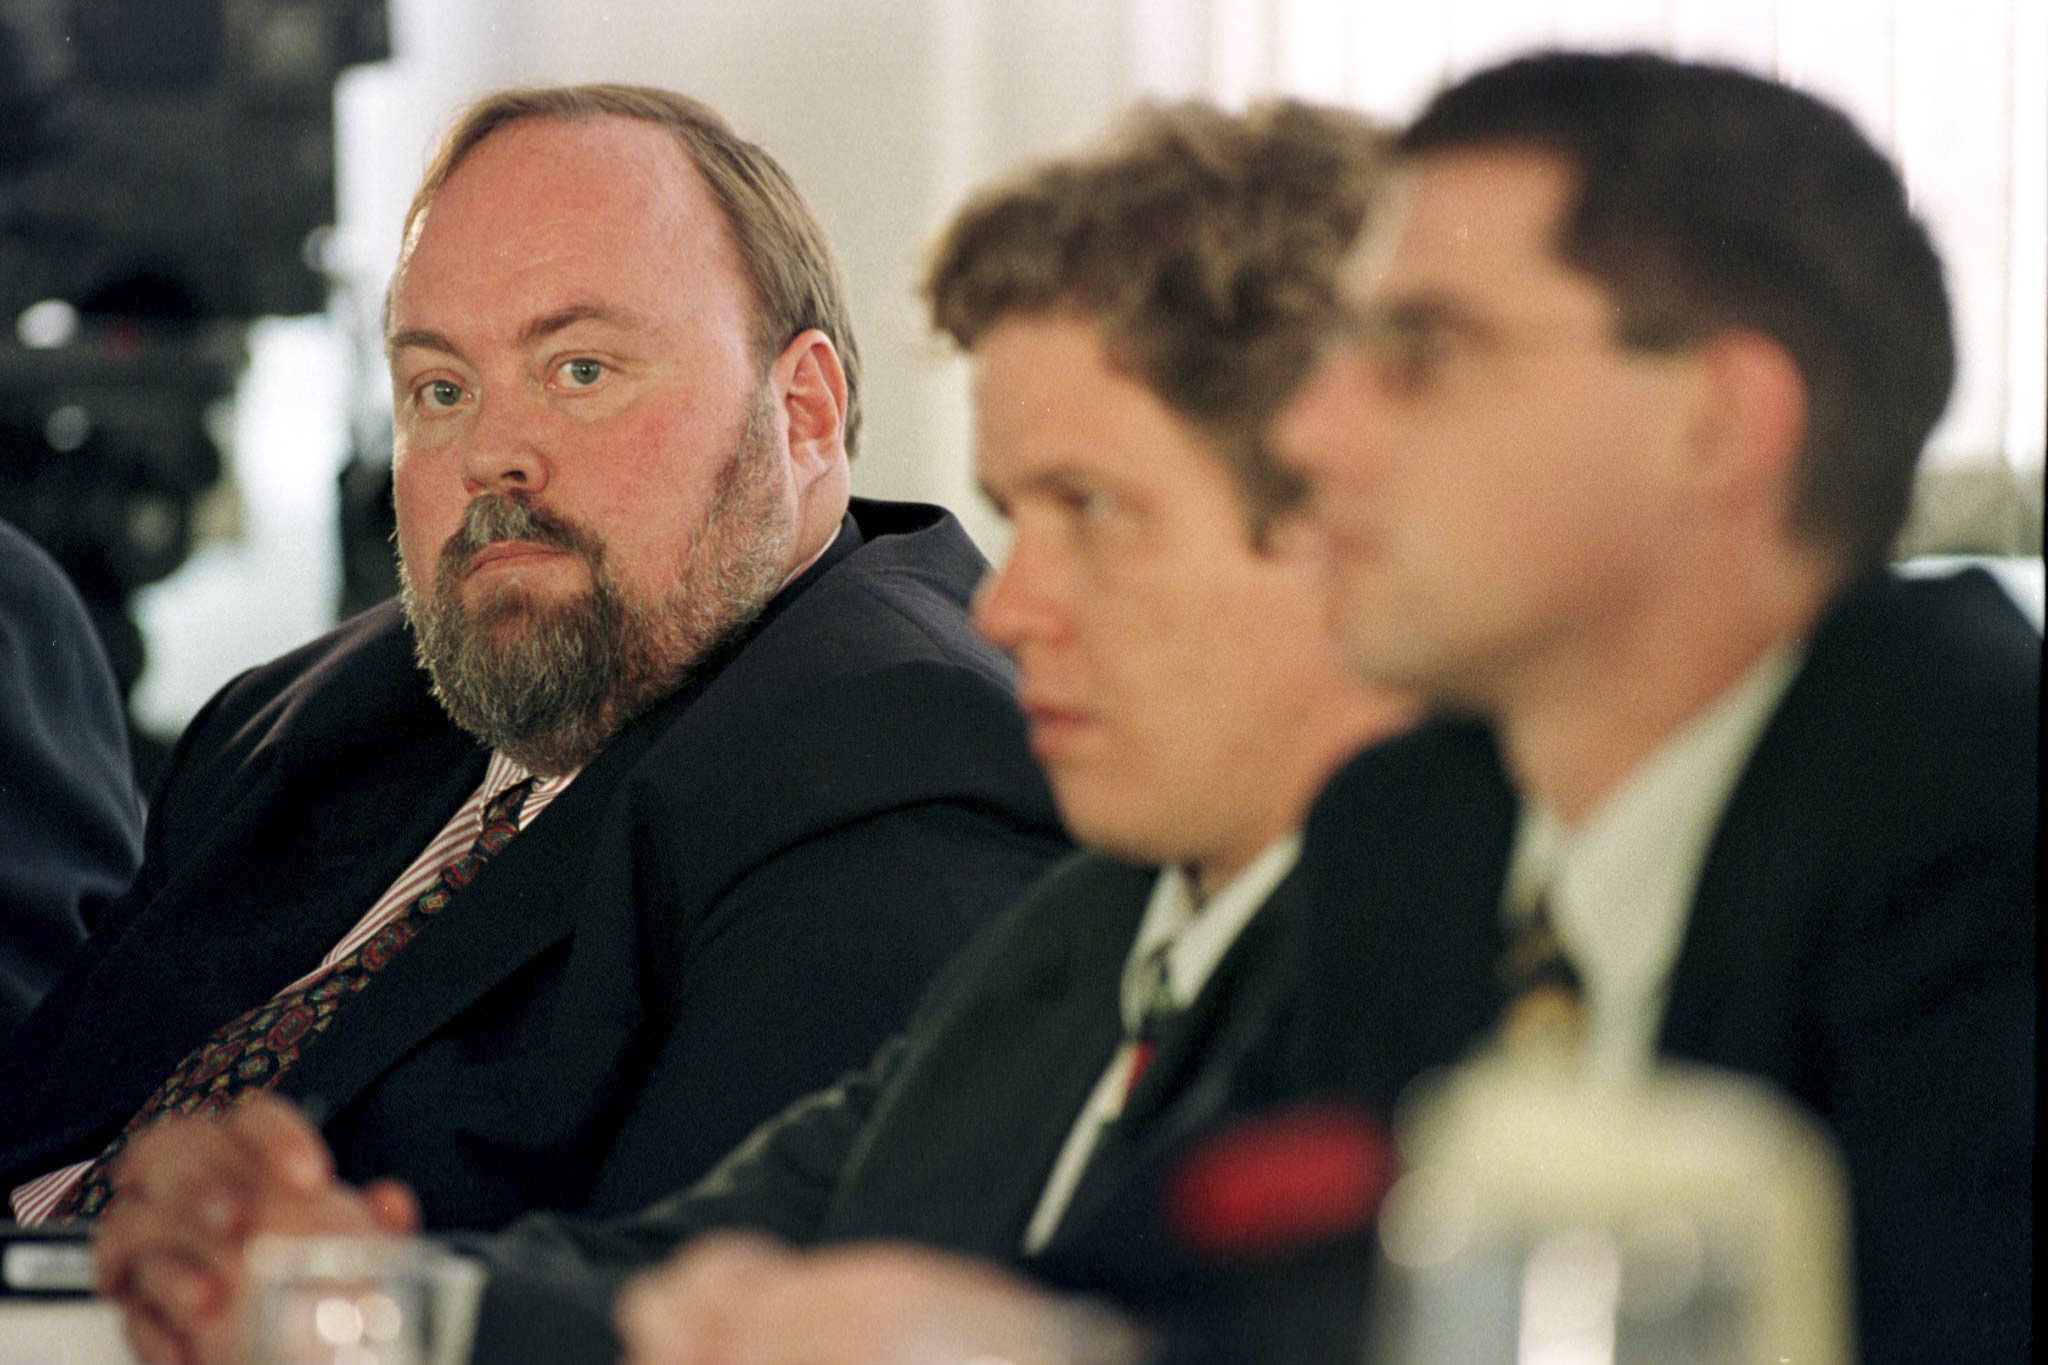 8 September 1998: Apartheid spy Craig Williamson sought amnesty through the Truth and Reconciliation Commission for bombing the ANC's London offices in 1982. (Photograph by Reuters)